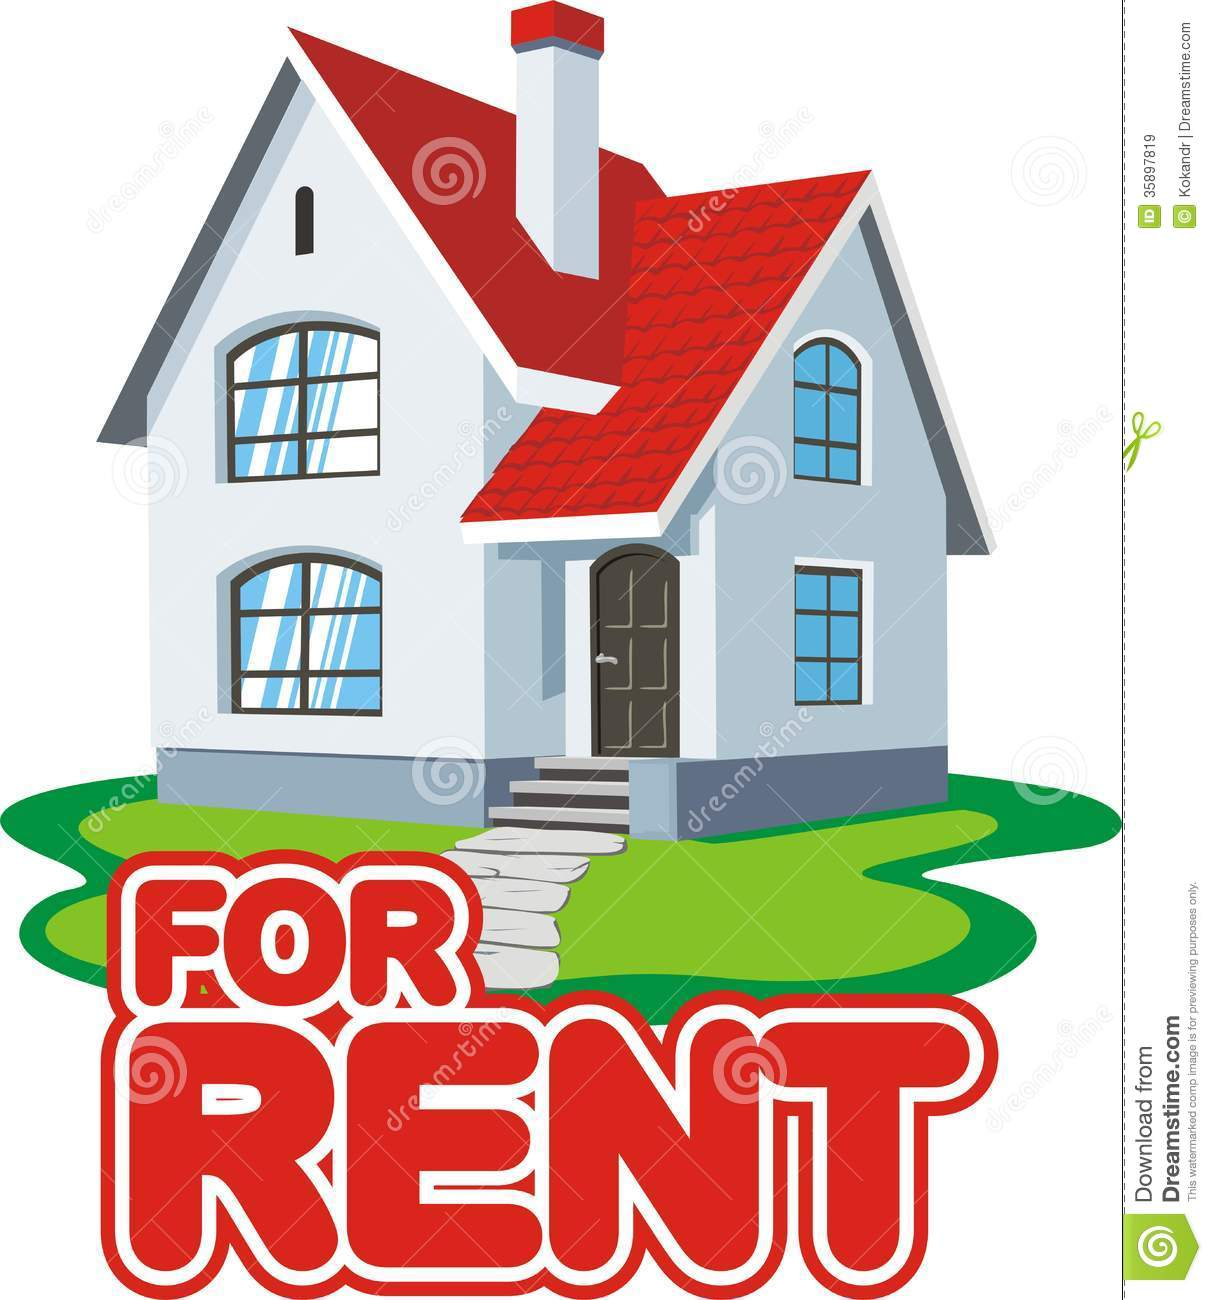 For Rent Clipart